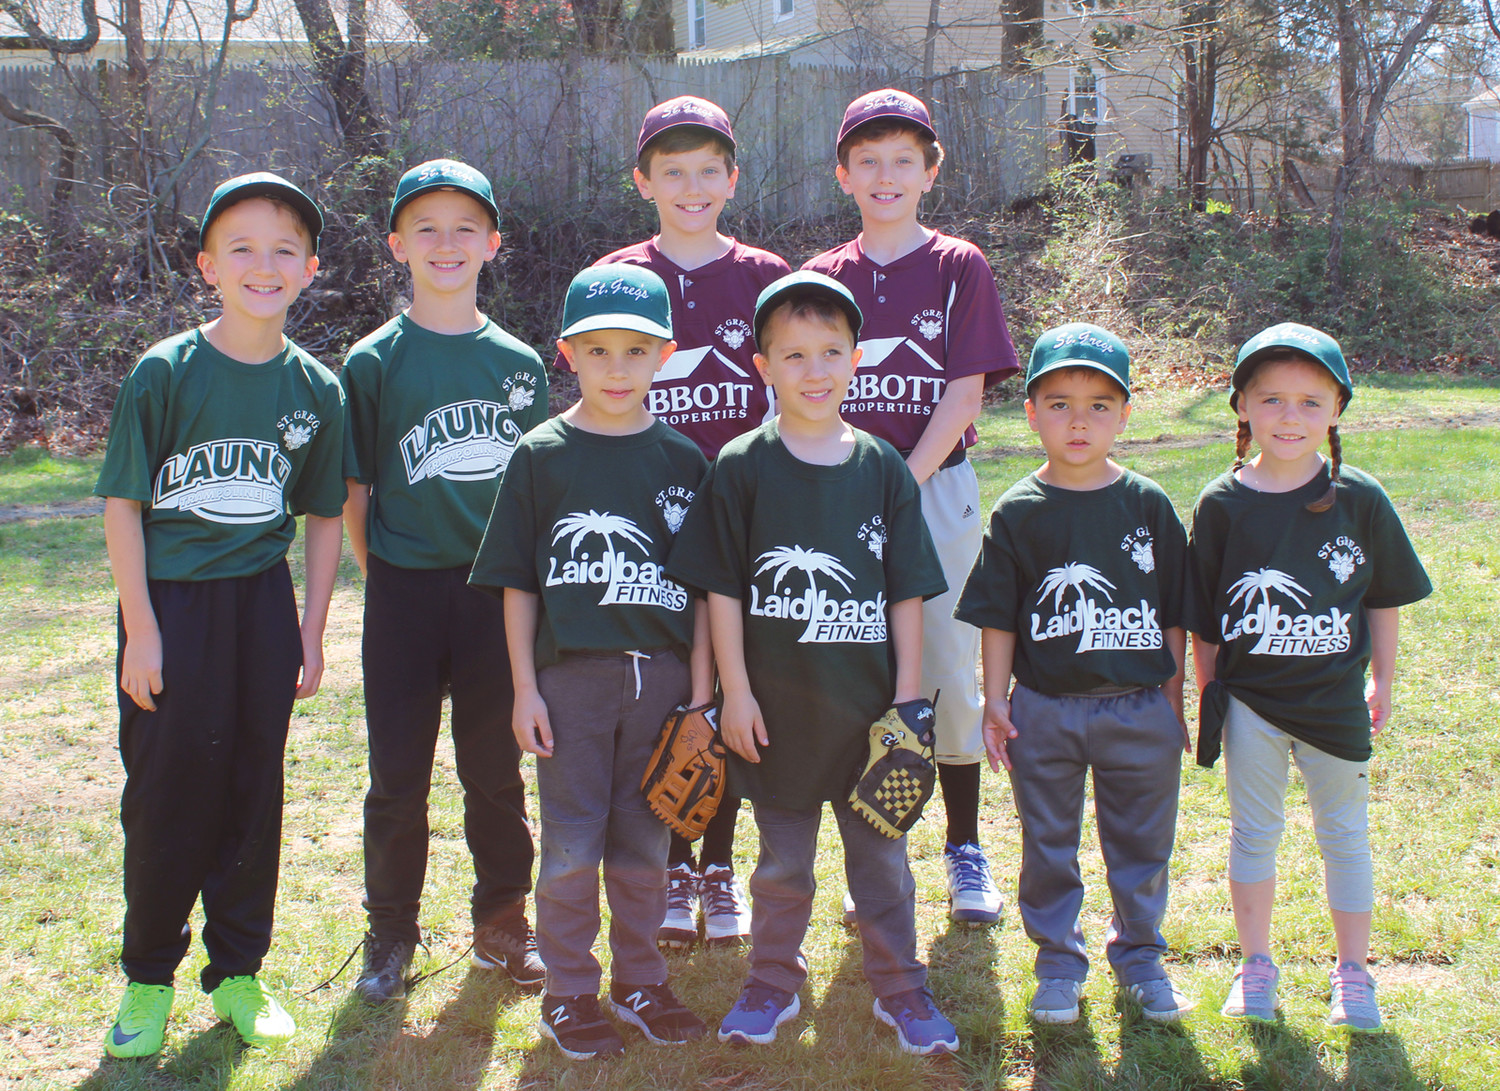 The St. Gregory the Great Baseball League kicked off its season. In the group photo on top from back left: Oliver and Bennett Jackson, Josh and John Maynard. Front left to right: Christohper and Charlie DeRaffaele and Ben and Mia Goodine. Missing are Thomas and Edmund Sardelli.